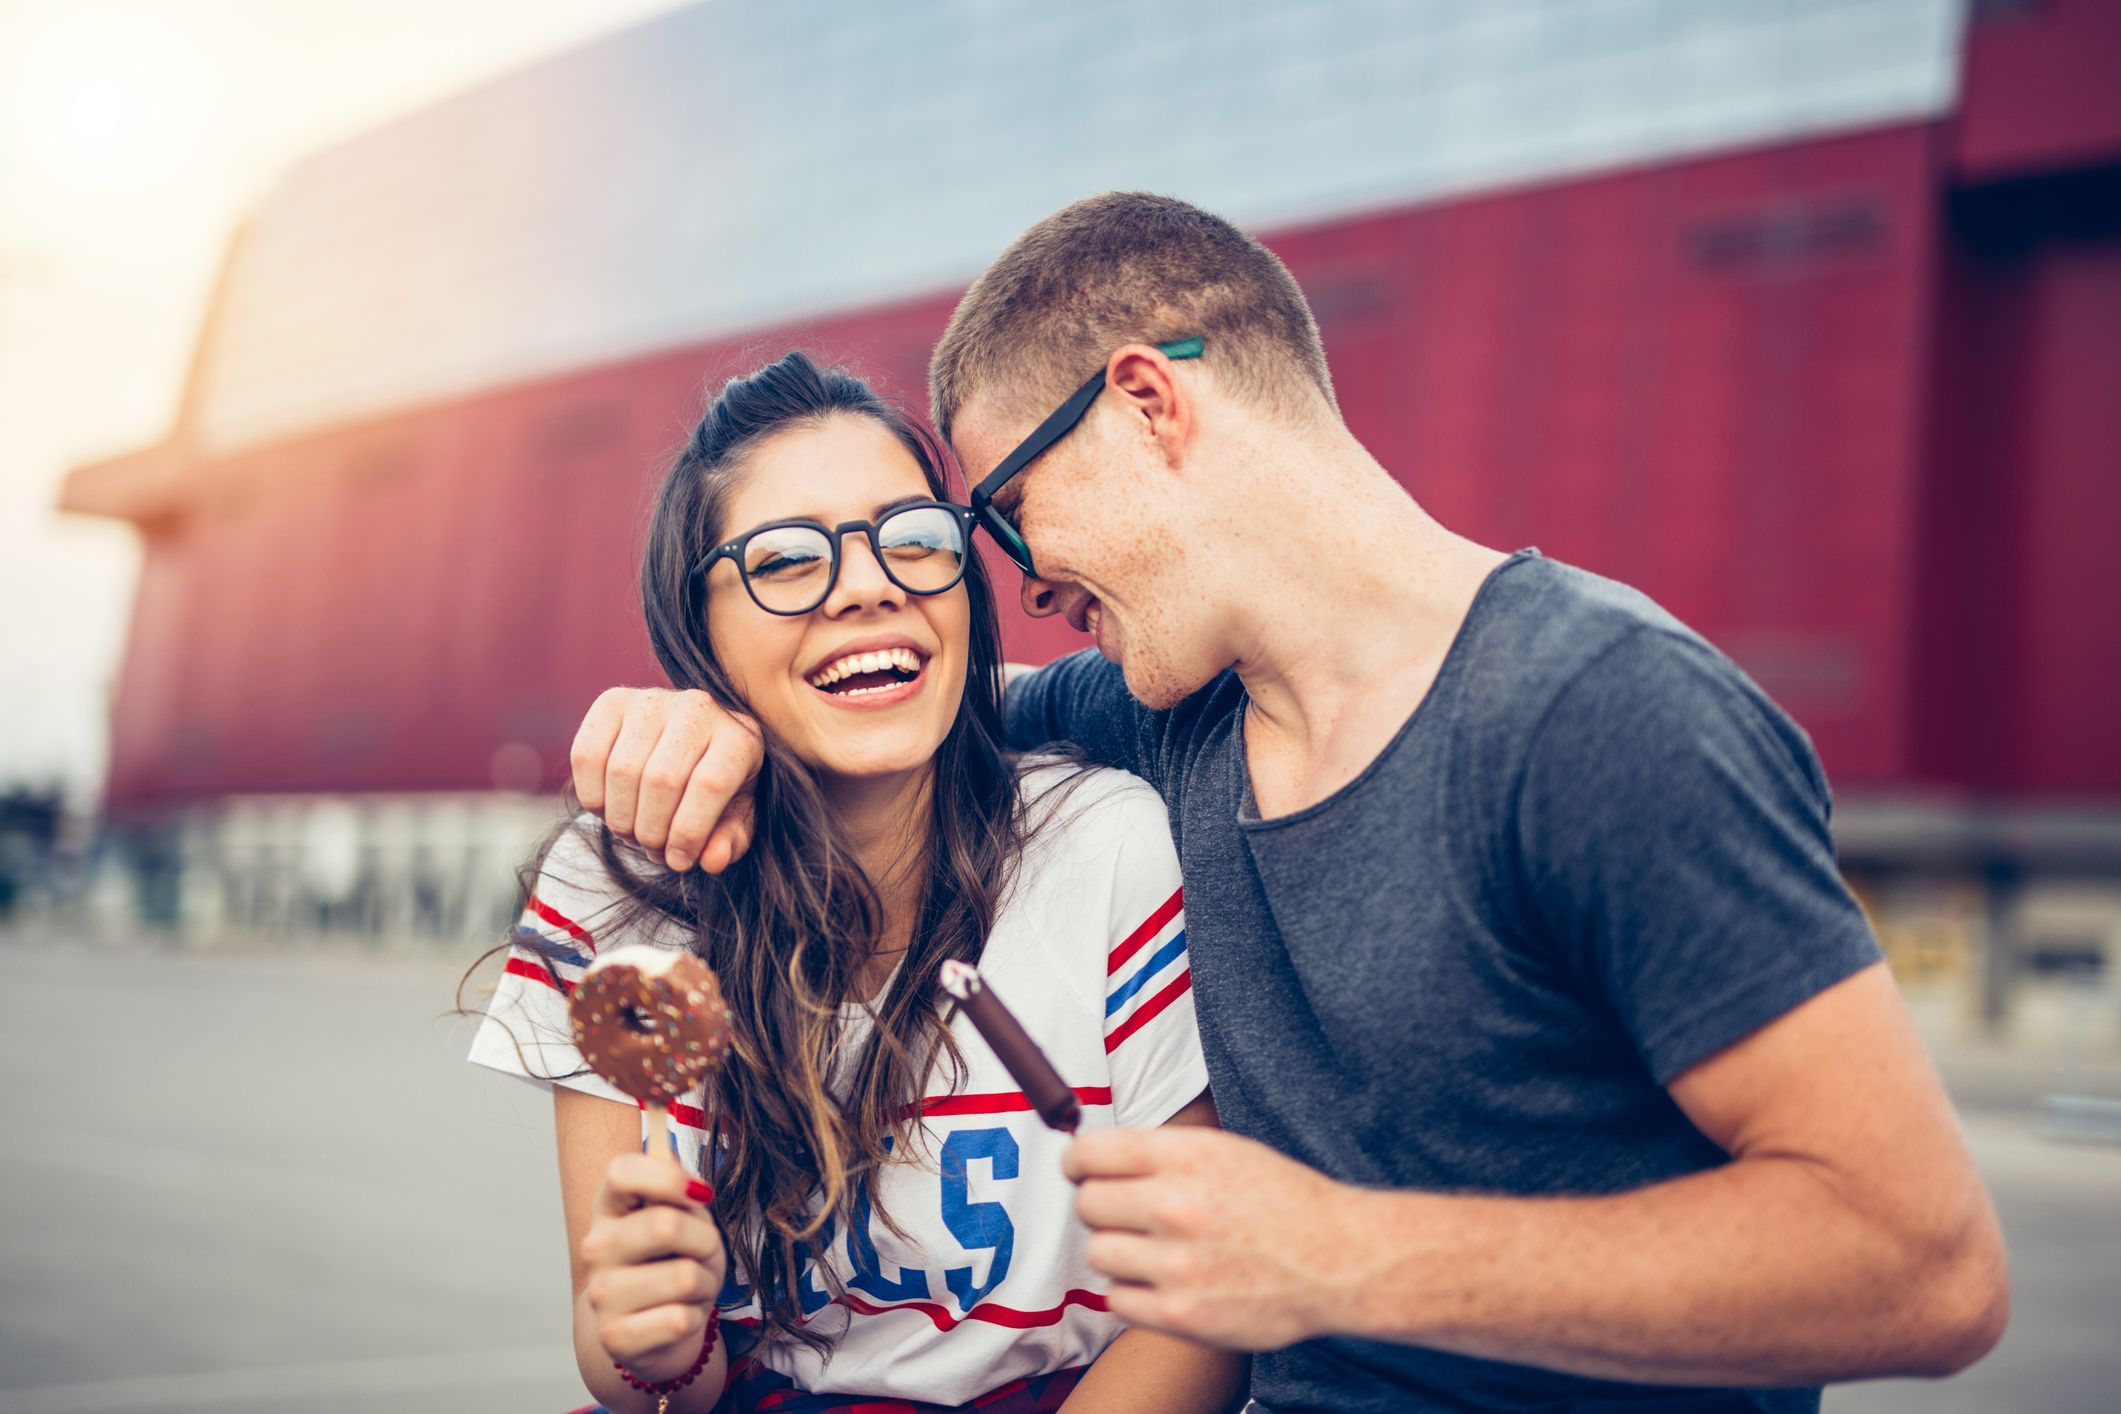 Pictures of romantic couples dating anniversary ideas